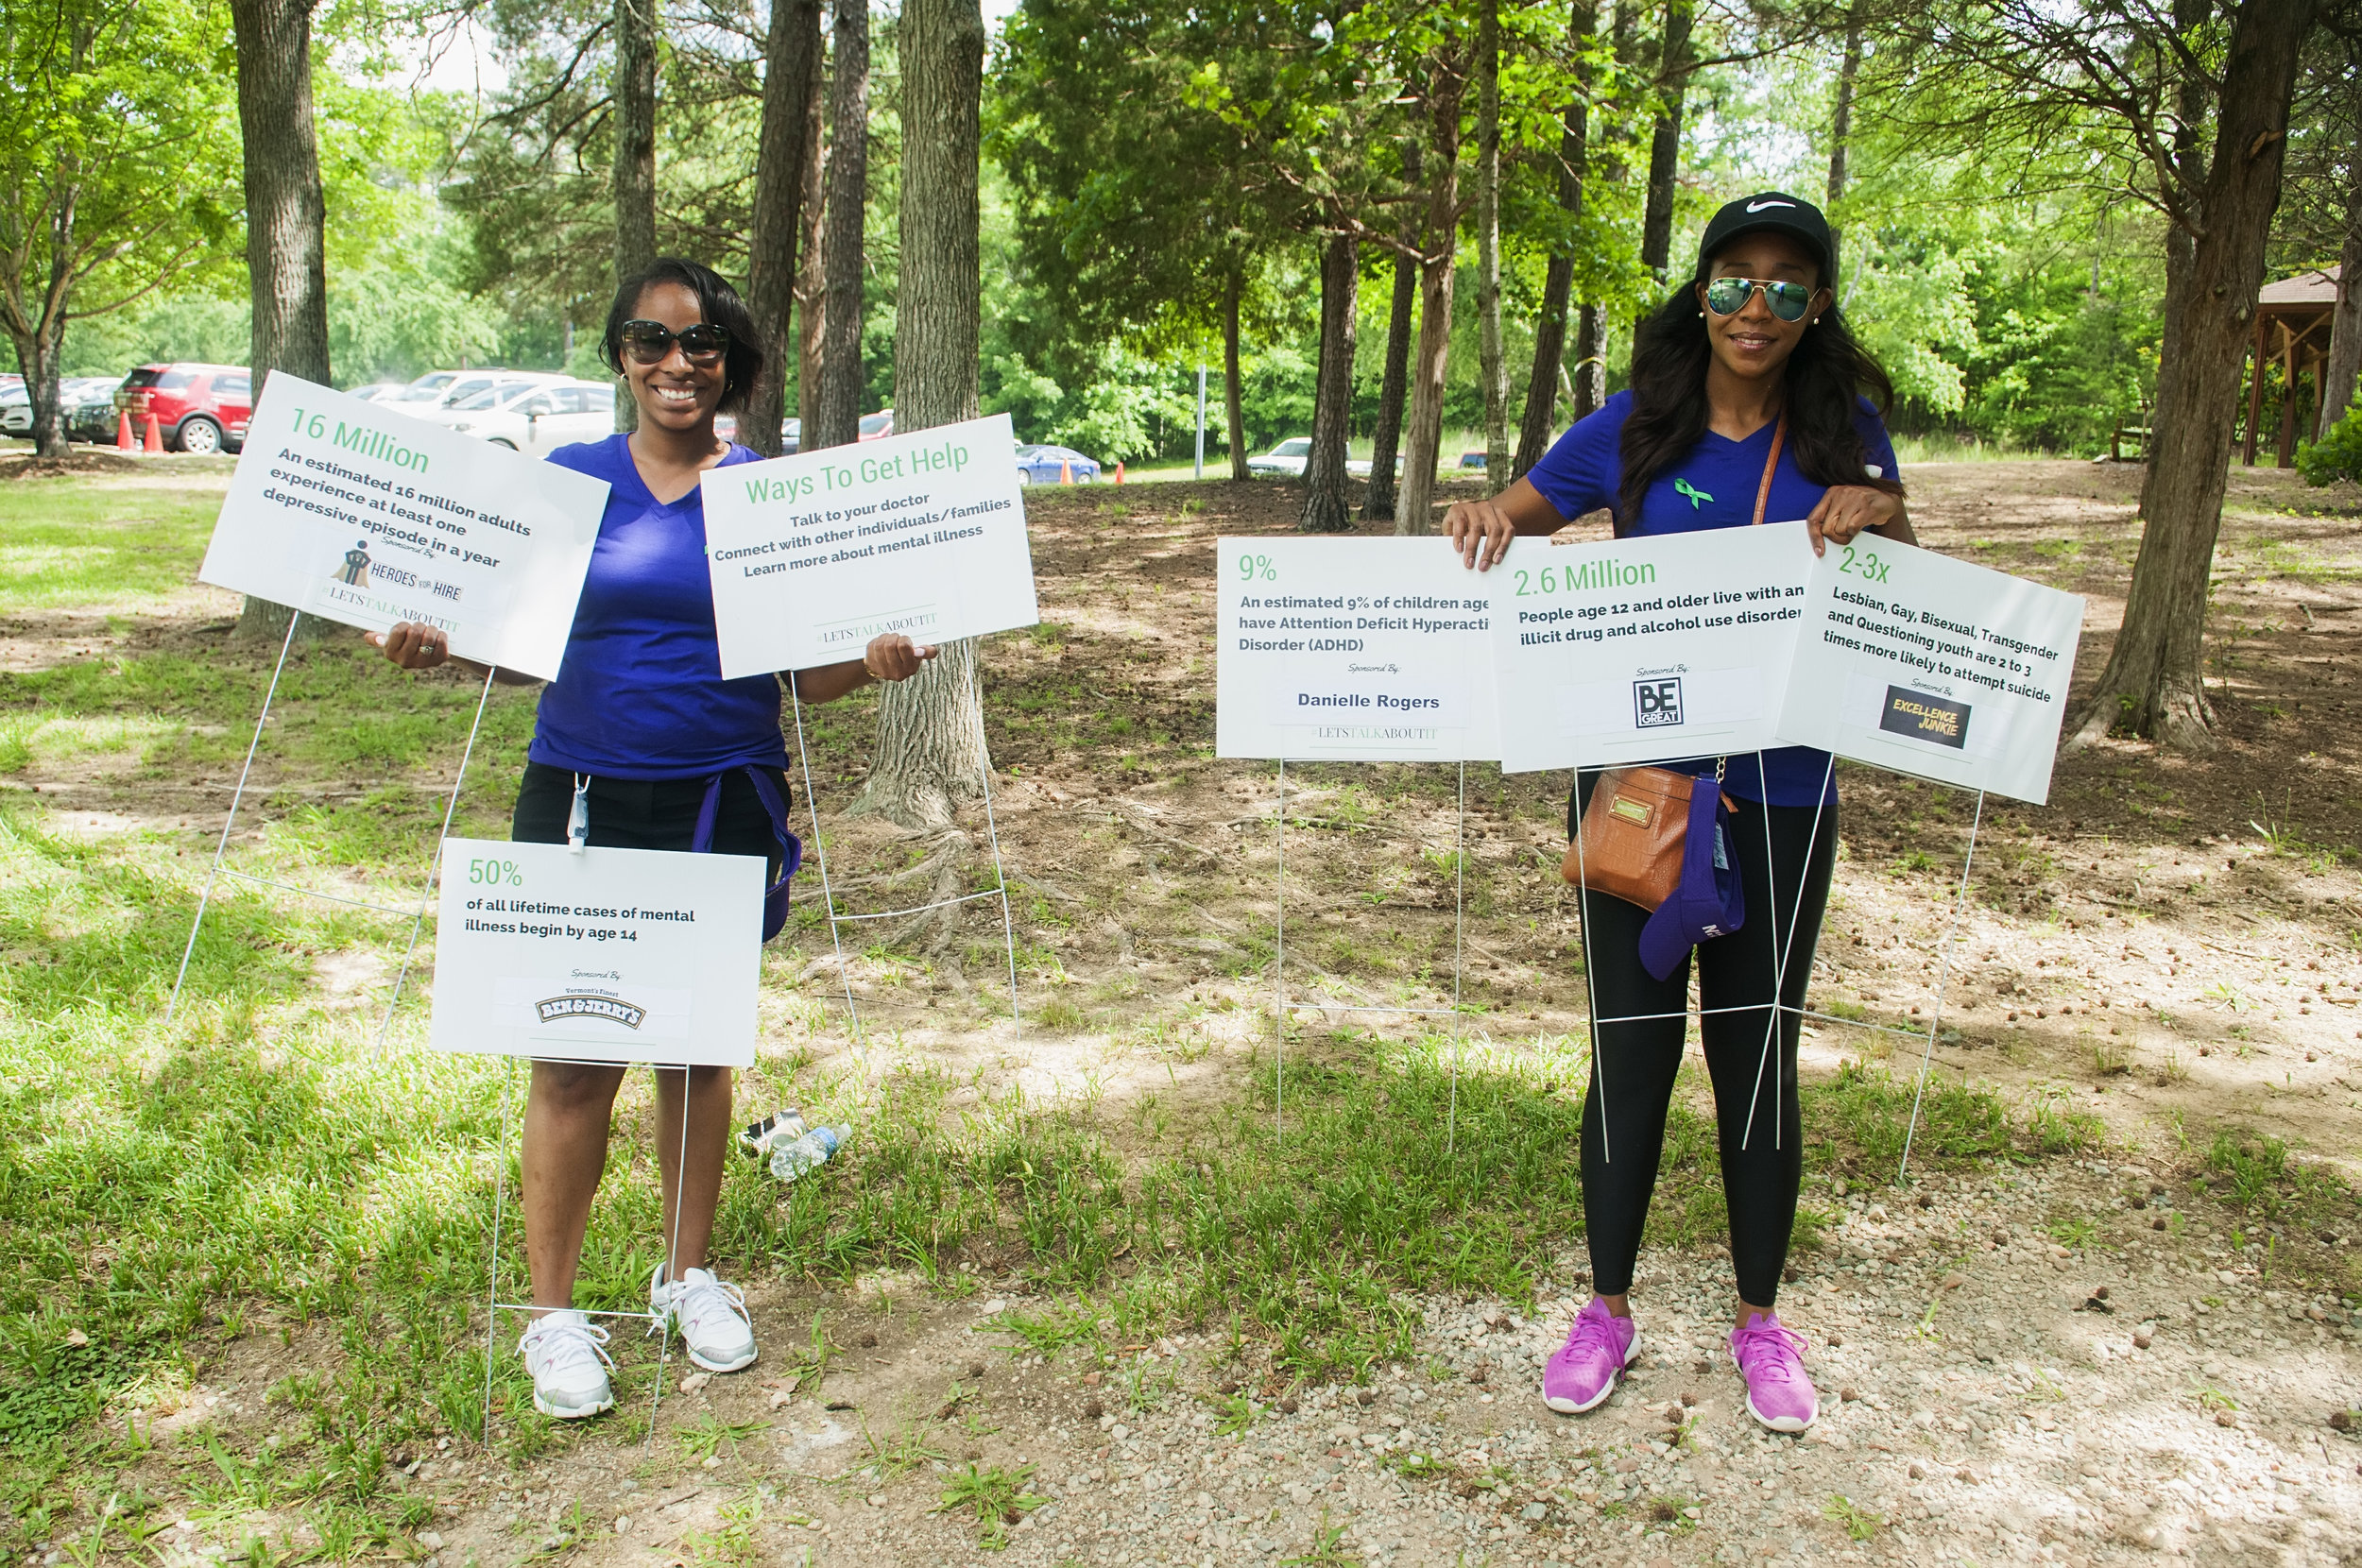 2nd Annual Let's Talk About It Mental Health Awareness Walk @ Park Rd Park 5-20-17 by Jon Strayhorn 172.jpg